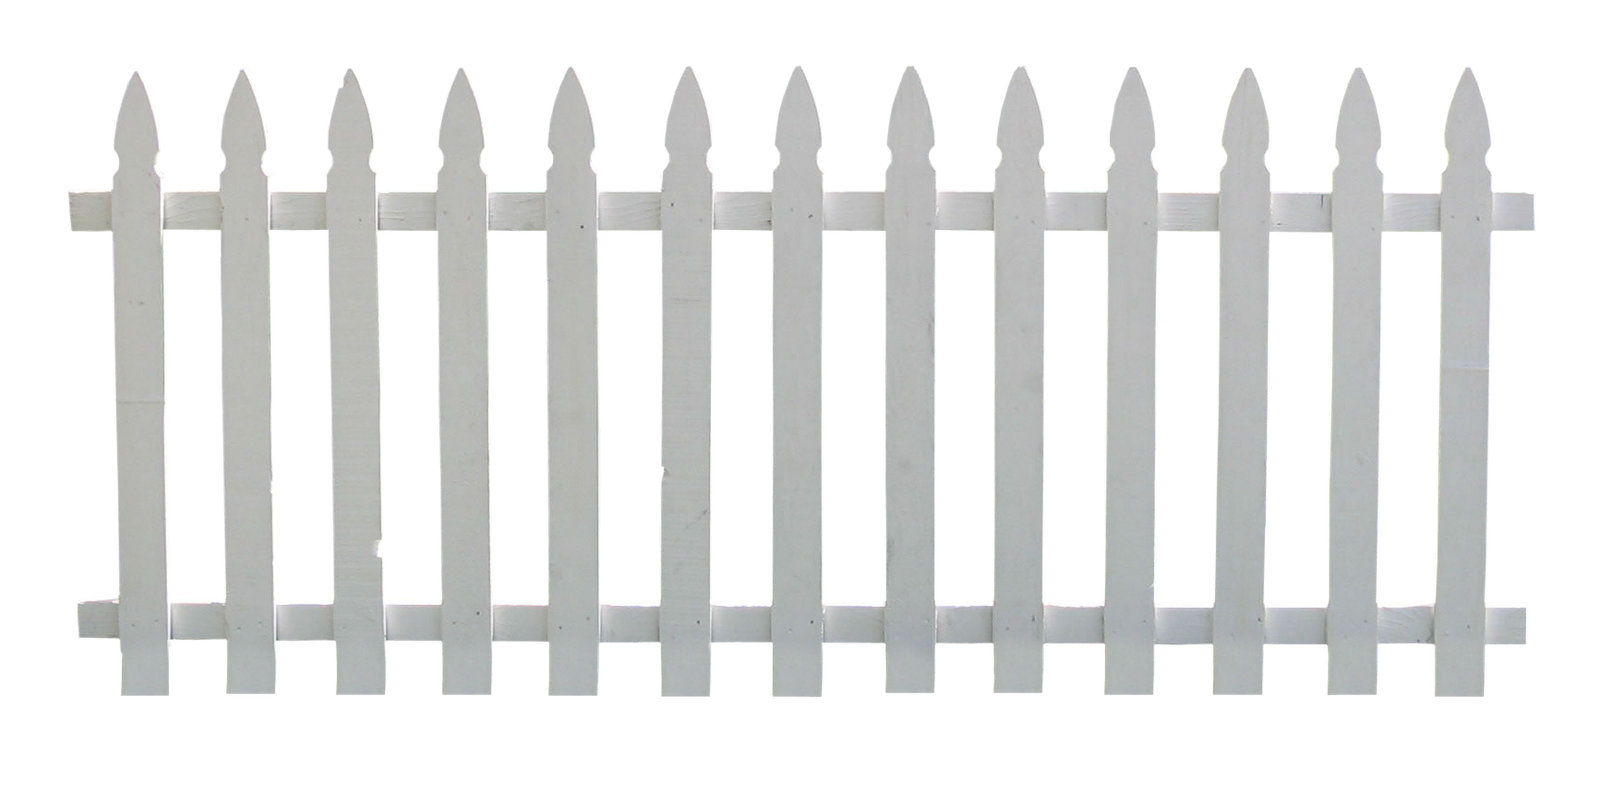 White Picket Fence Per Ft Price Nw Event Rentals